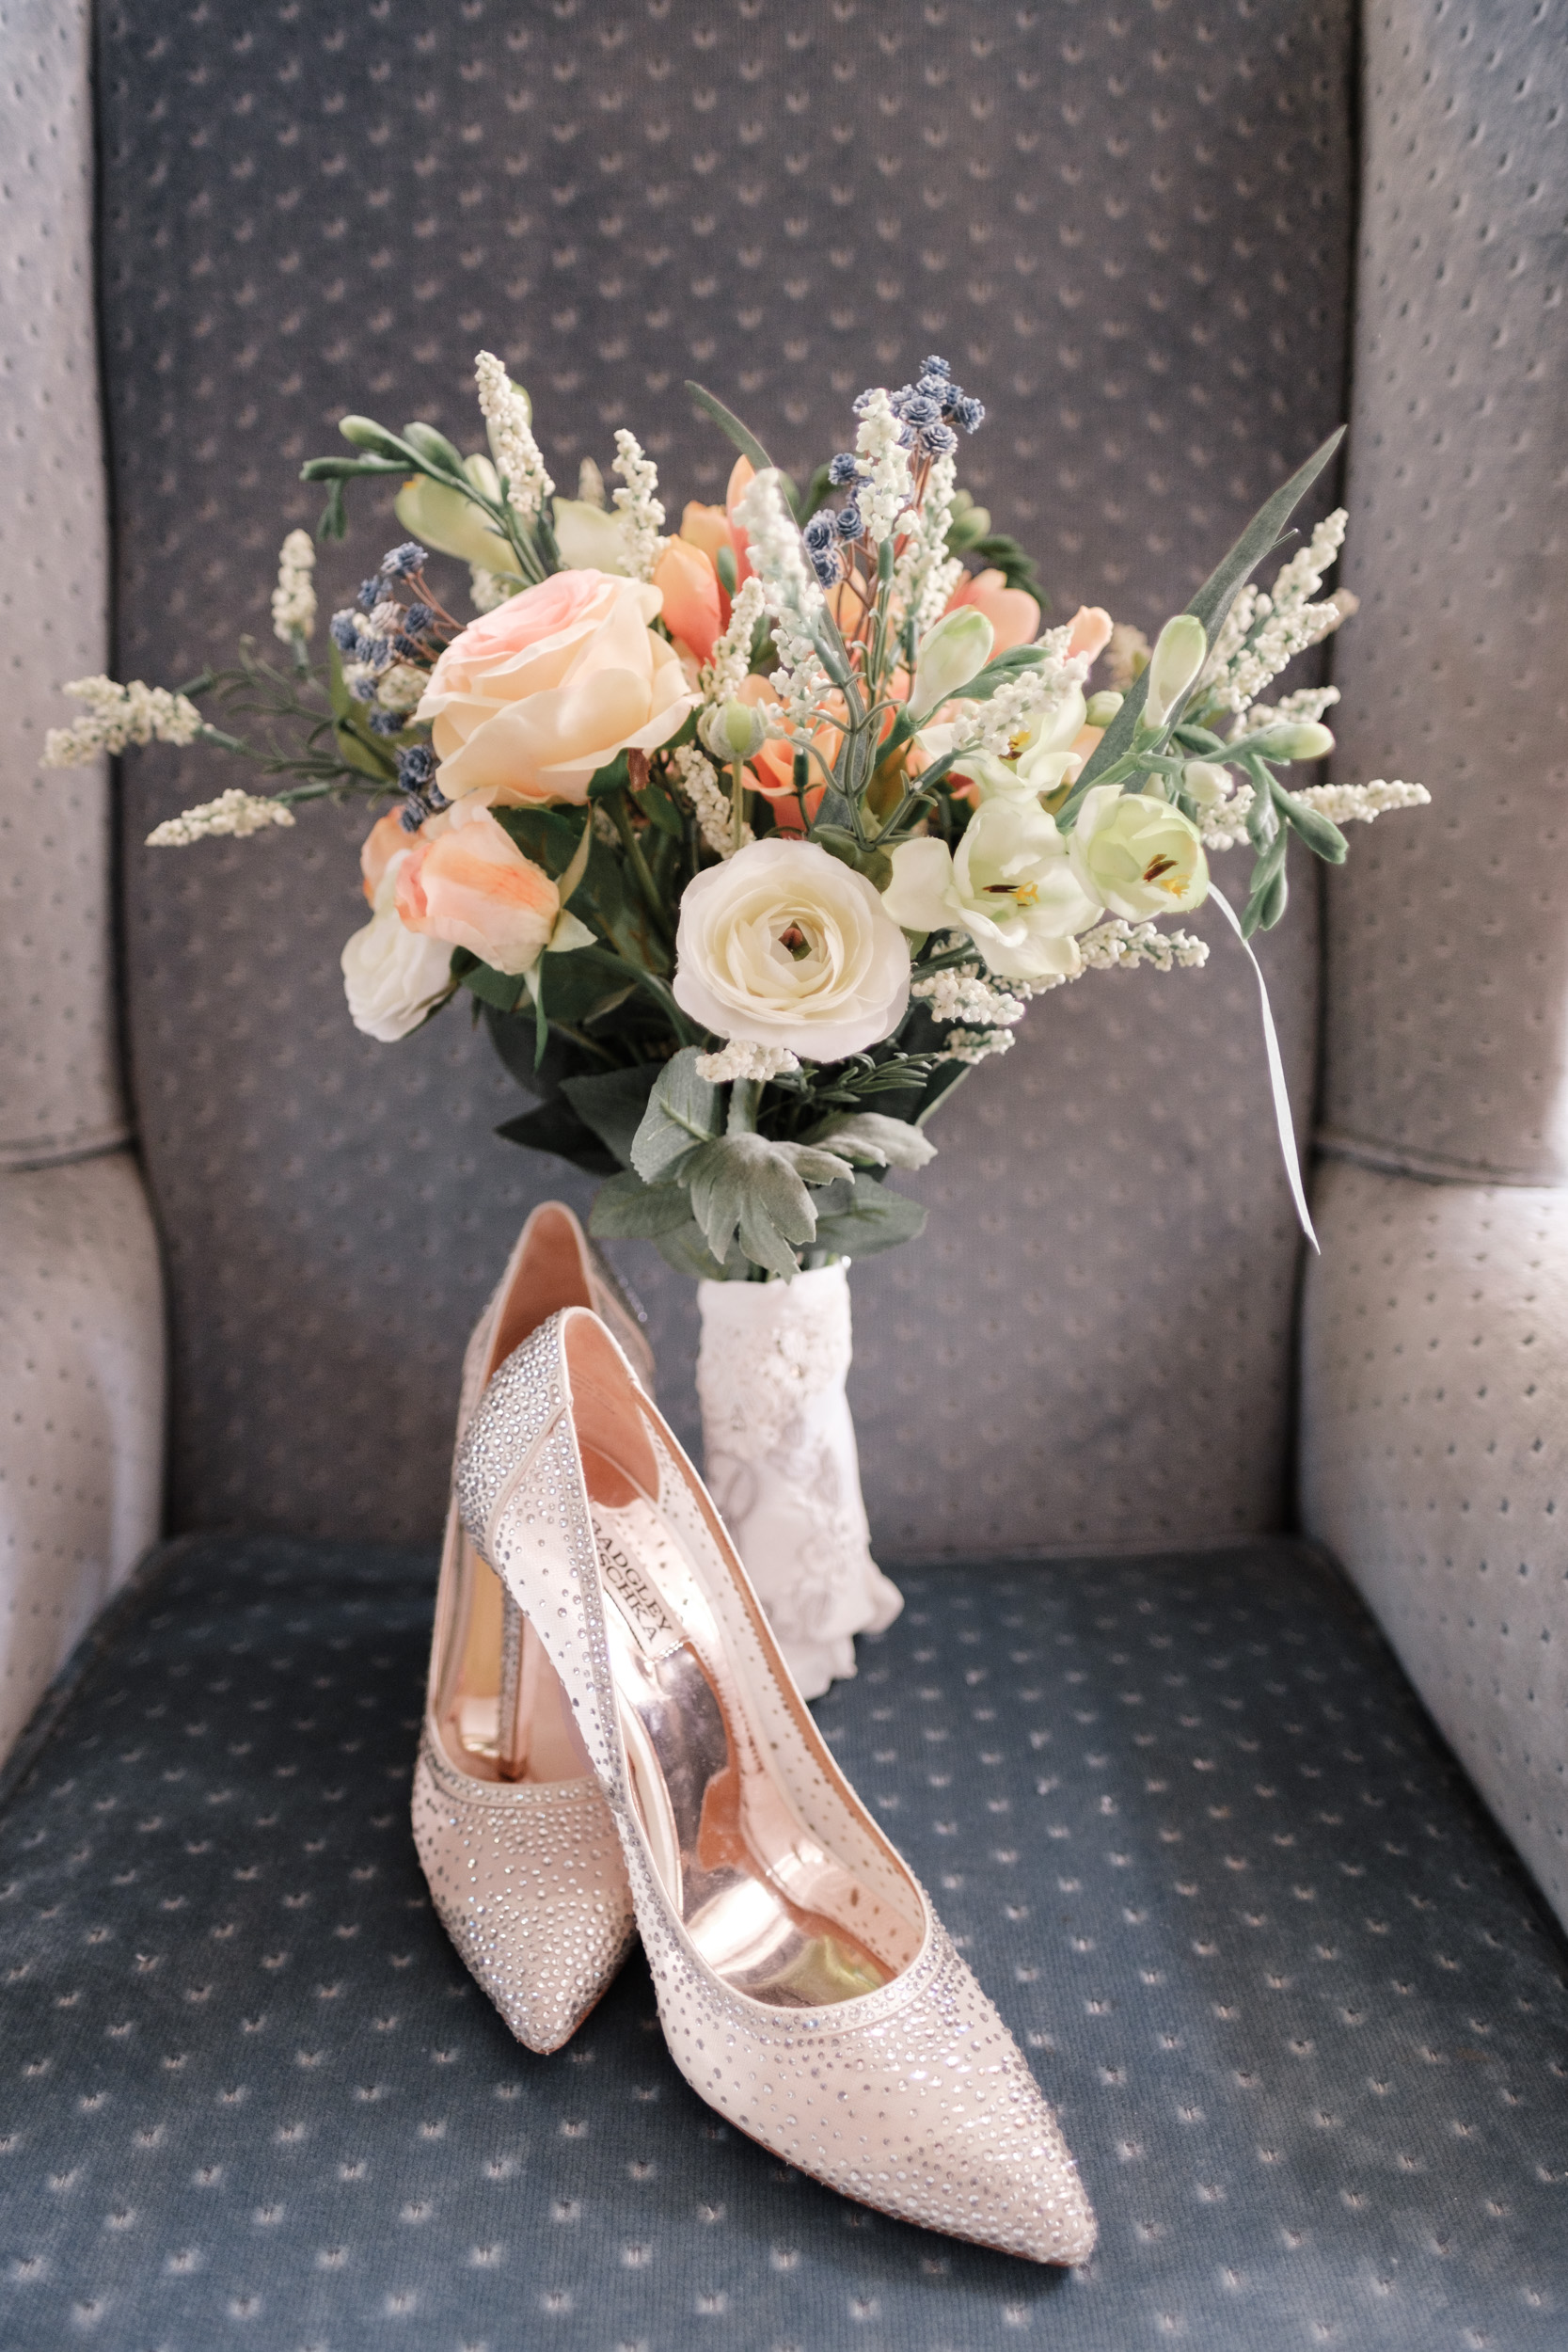 wedding day flowers and heals with special note written on bottom